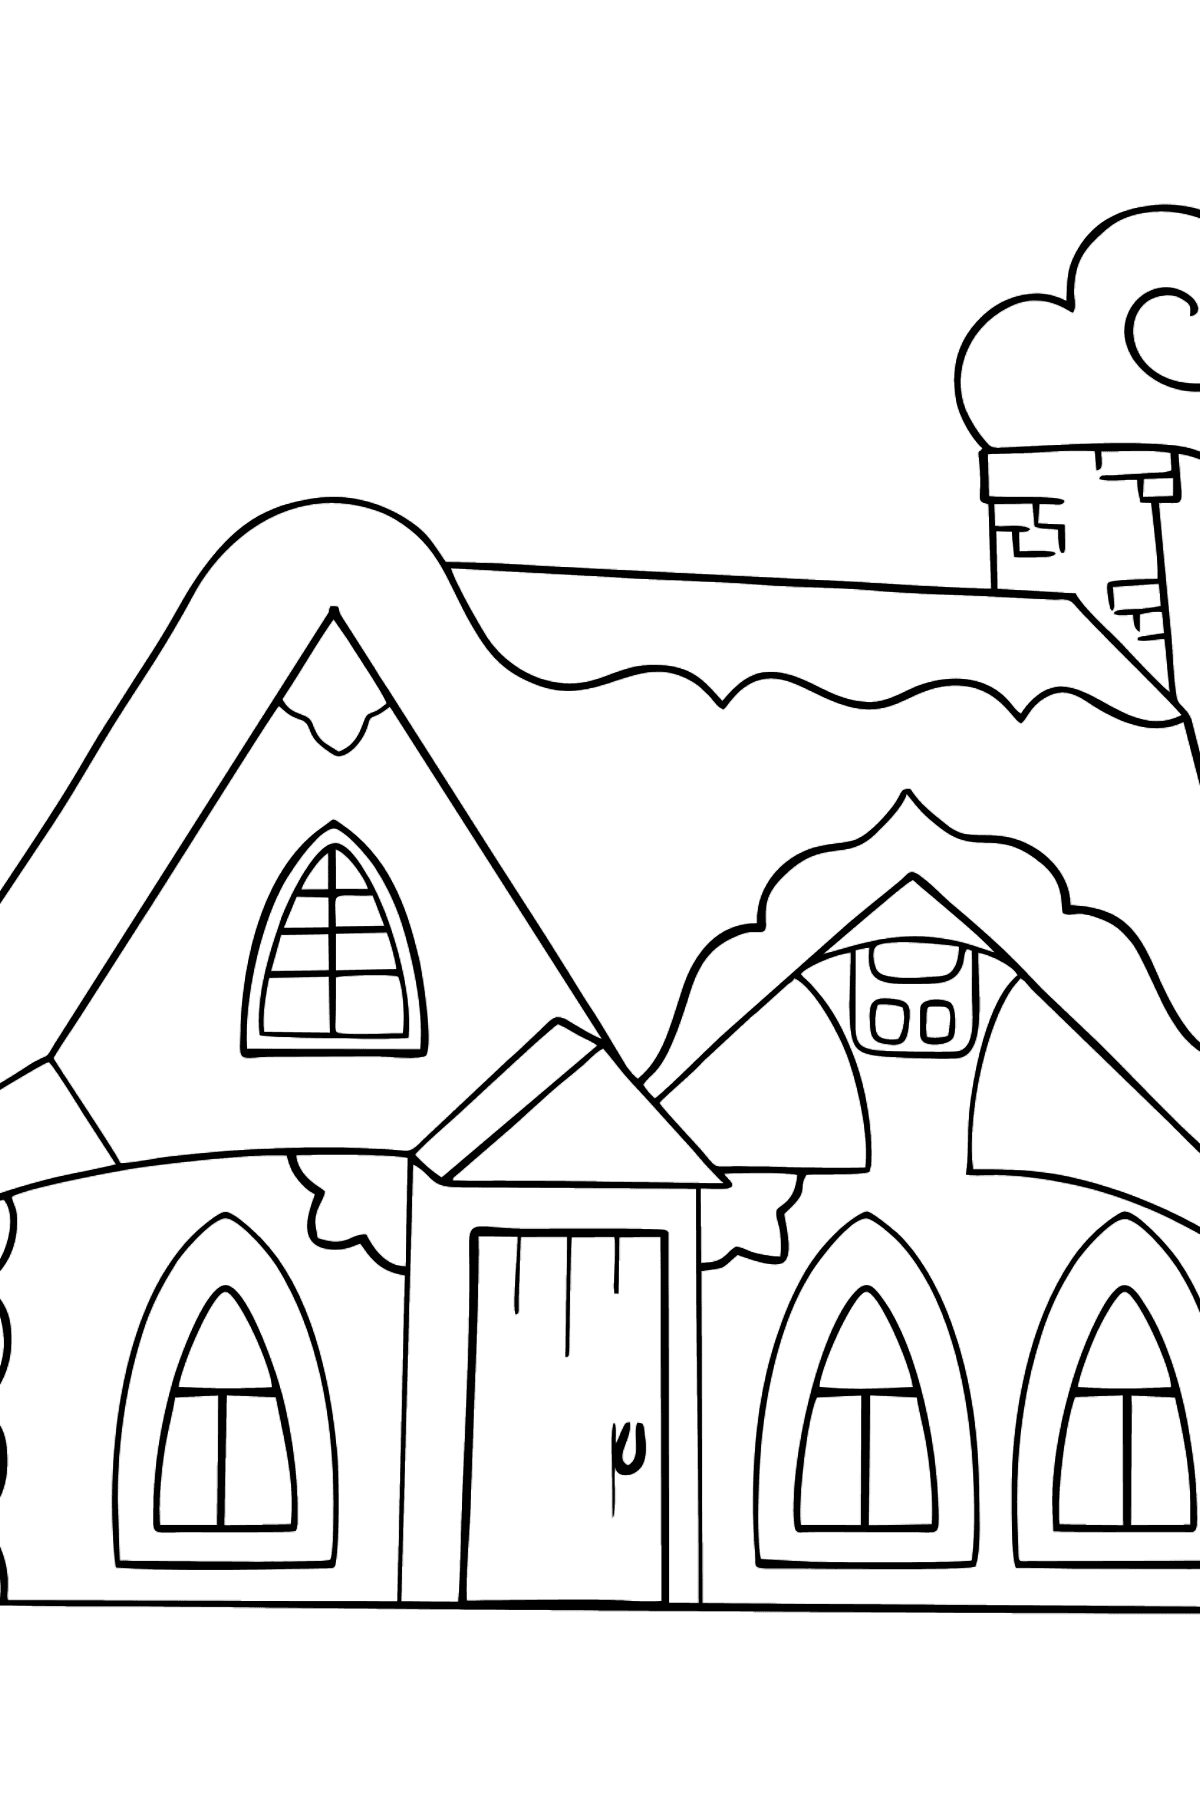 Complex Coloring Page - A Fairytale House - Coloring Pages for Kids